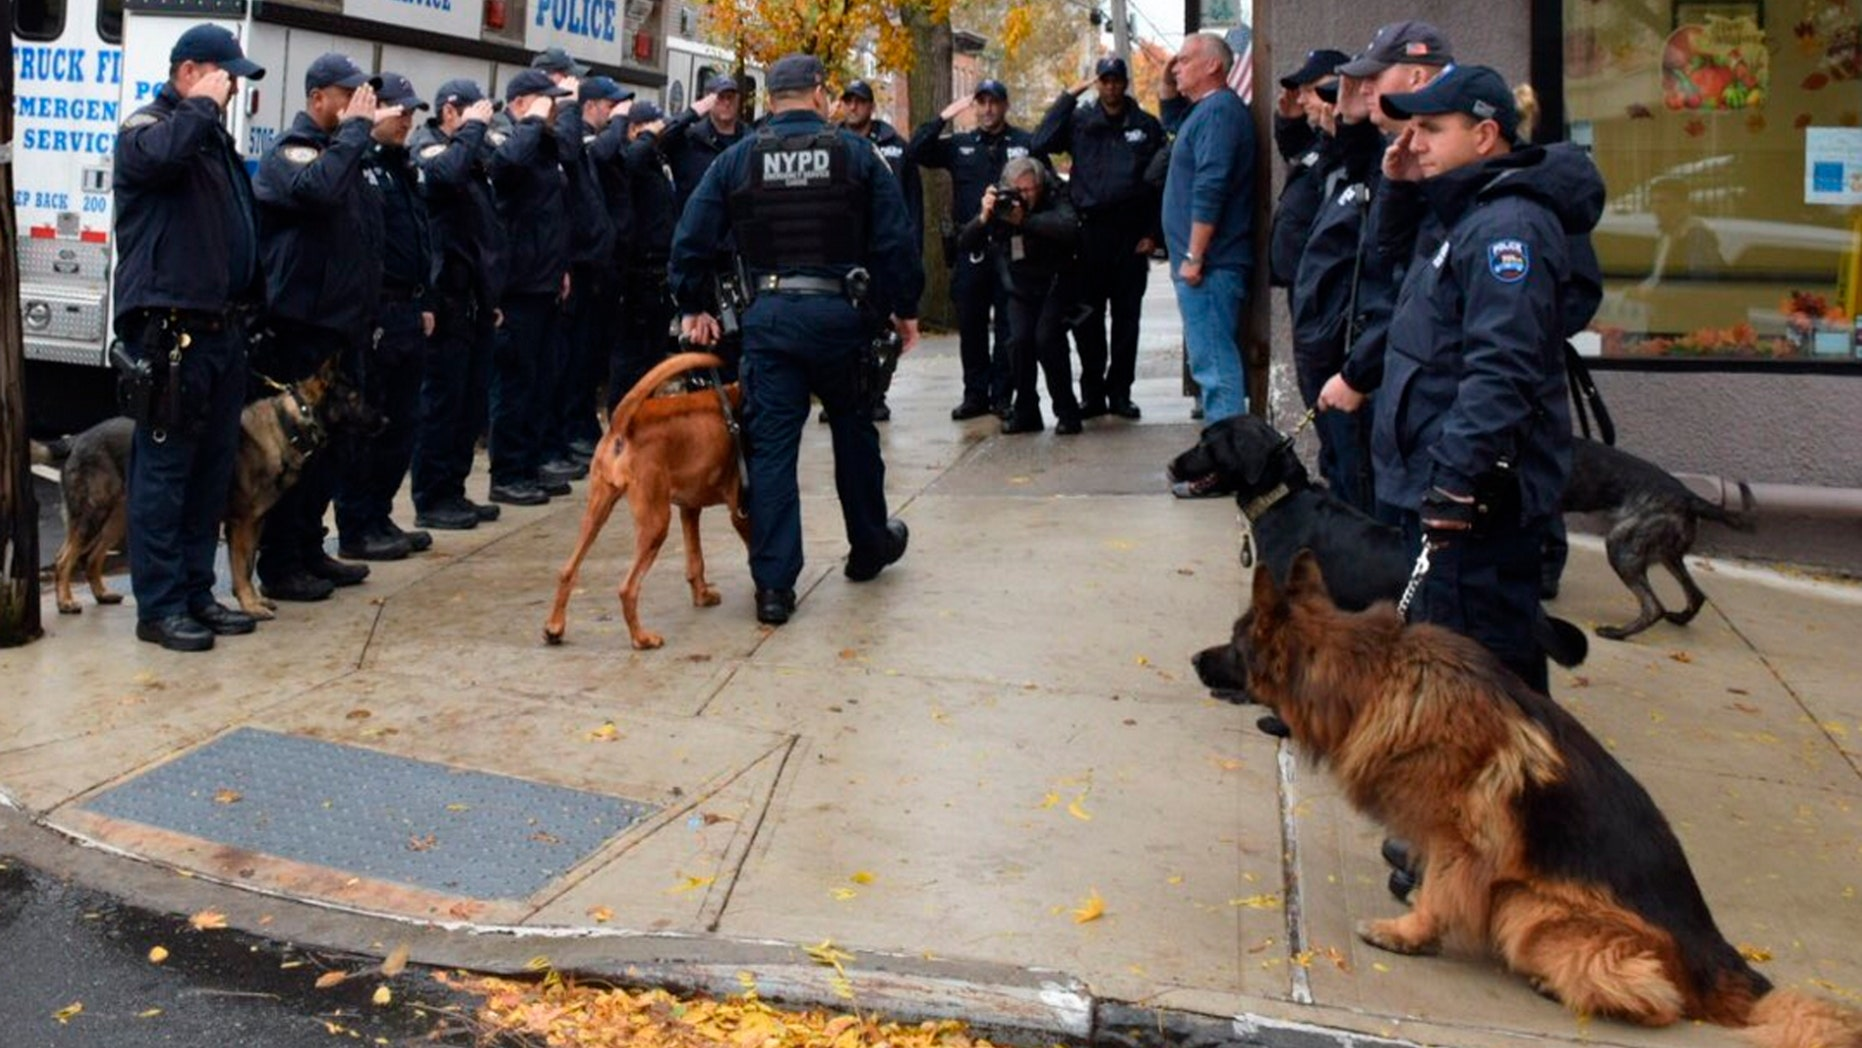 In this Nov. 5, 2018 photo, provided by the New York City Police Department (NYPD) an honor guard of police officers salute as Angel, a 5-year-old bloodhound, is walked by her human partner, Officer Manuel Orellana, into Staten Island's Rosebank Animal Hospital to be euthanized, in New York. An aviation flyover also honored the Emergency Services K-9 just before she died after being diagnosed with cancer in August.